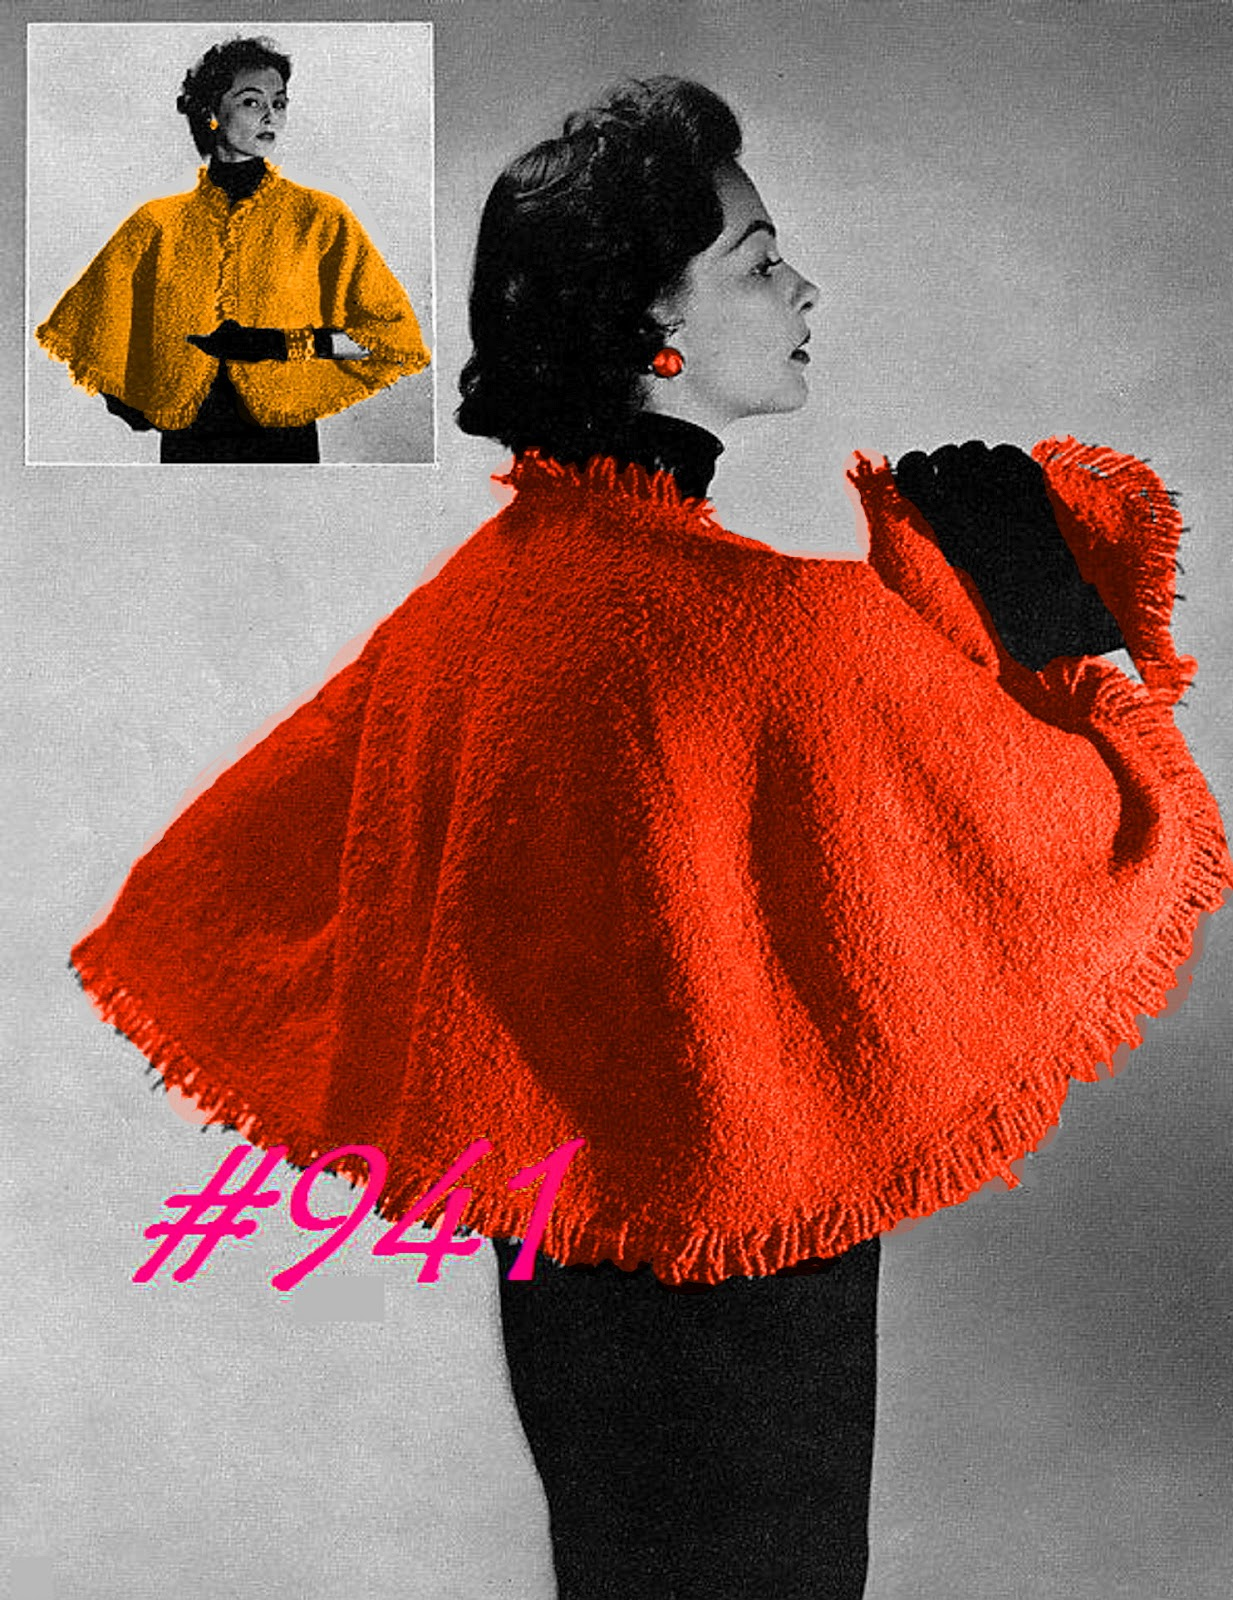 Knitting Patterns Capes : Miss Julias Patterns: Cozy Capes to Knit - Crochet & Free Patterns